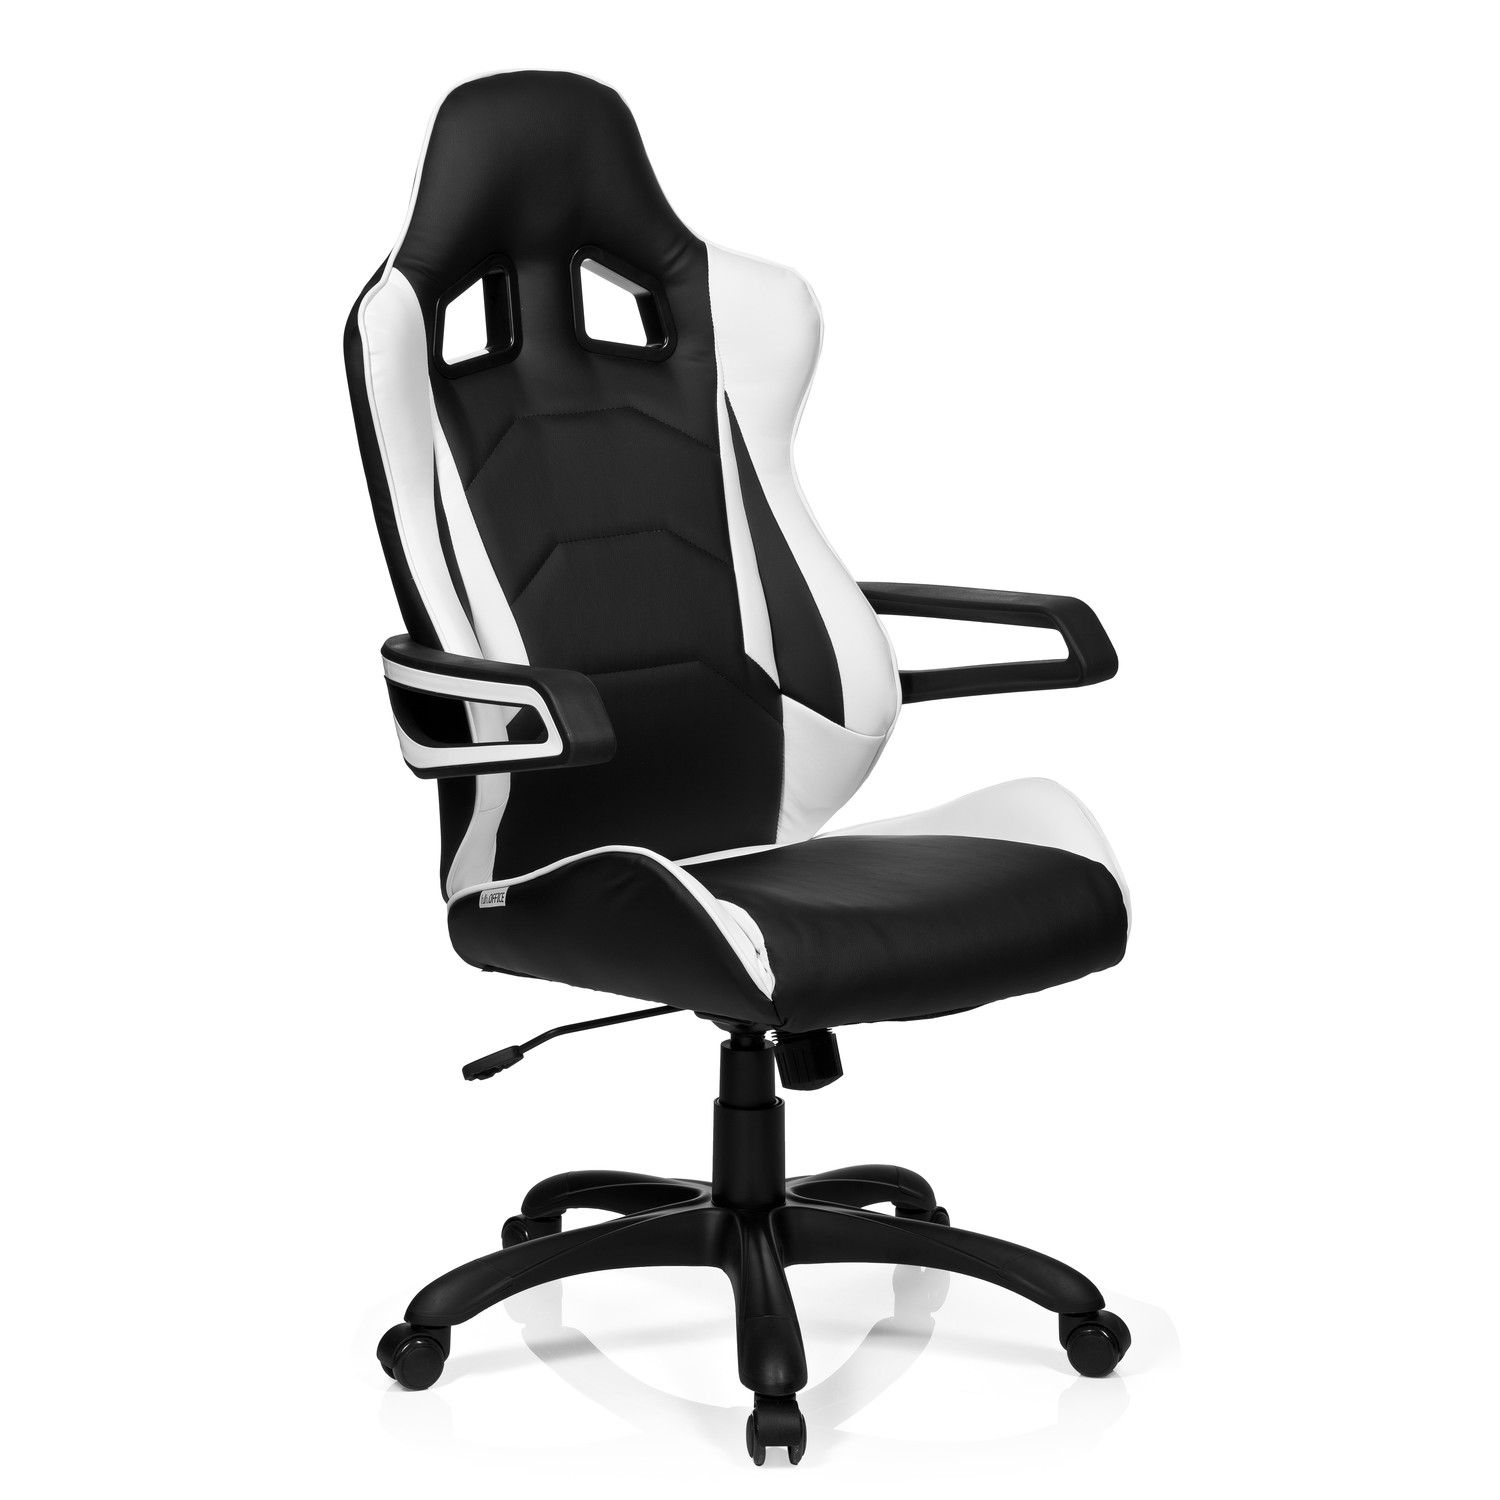 Silla gaming racer pro i uso 8h color blanco negro for Rebajas sillas gaming